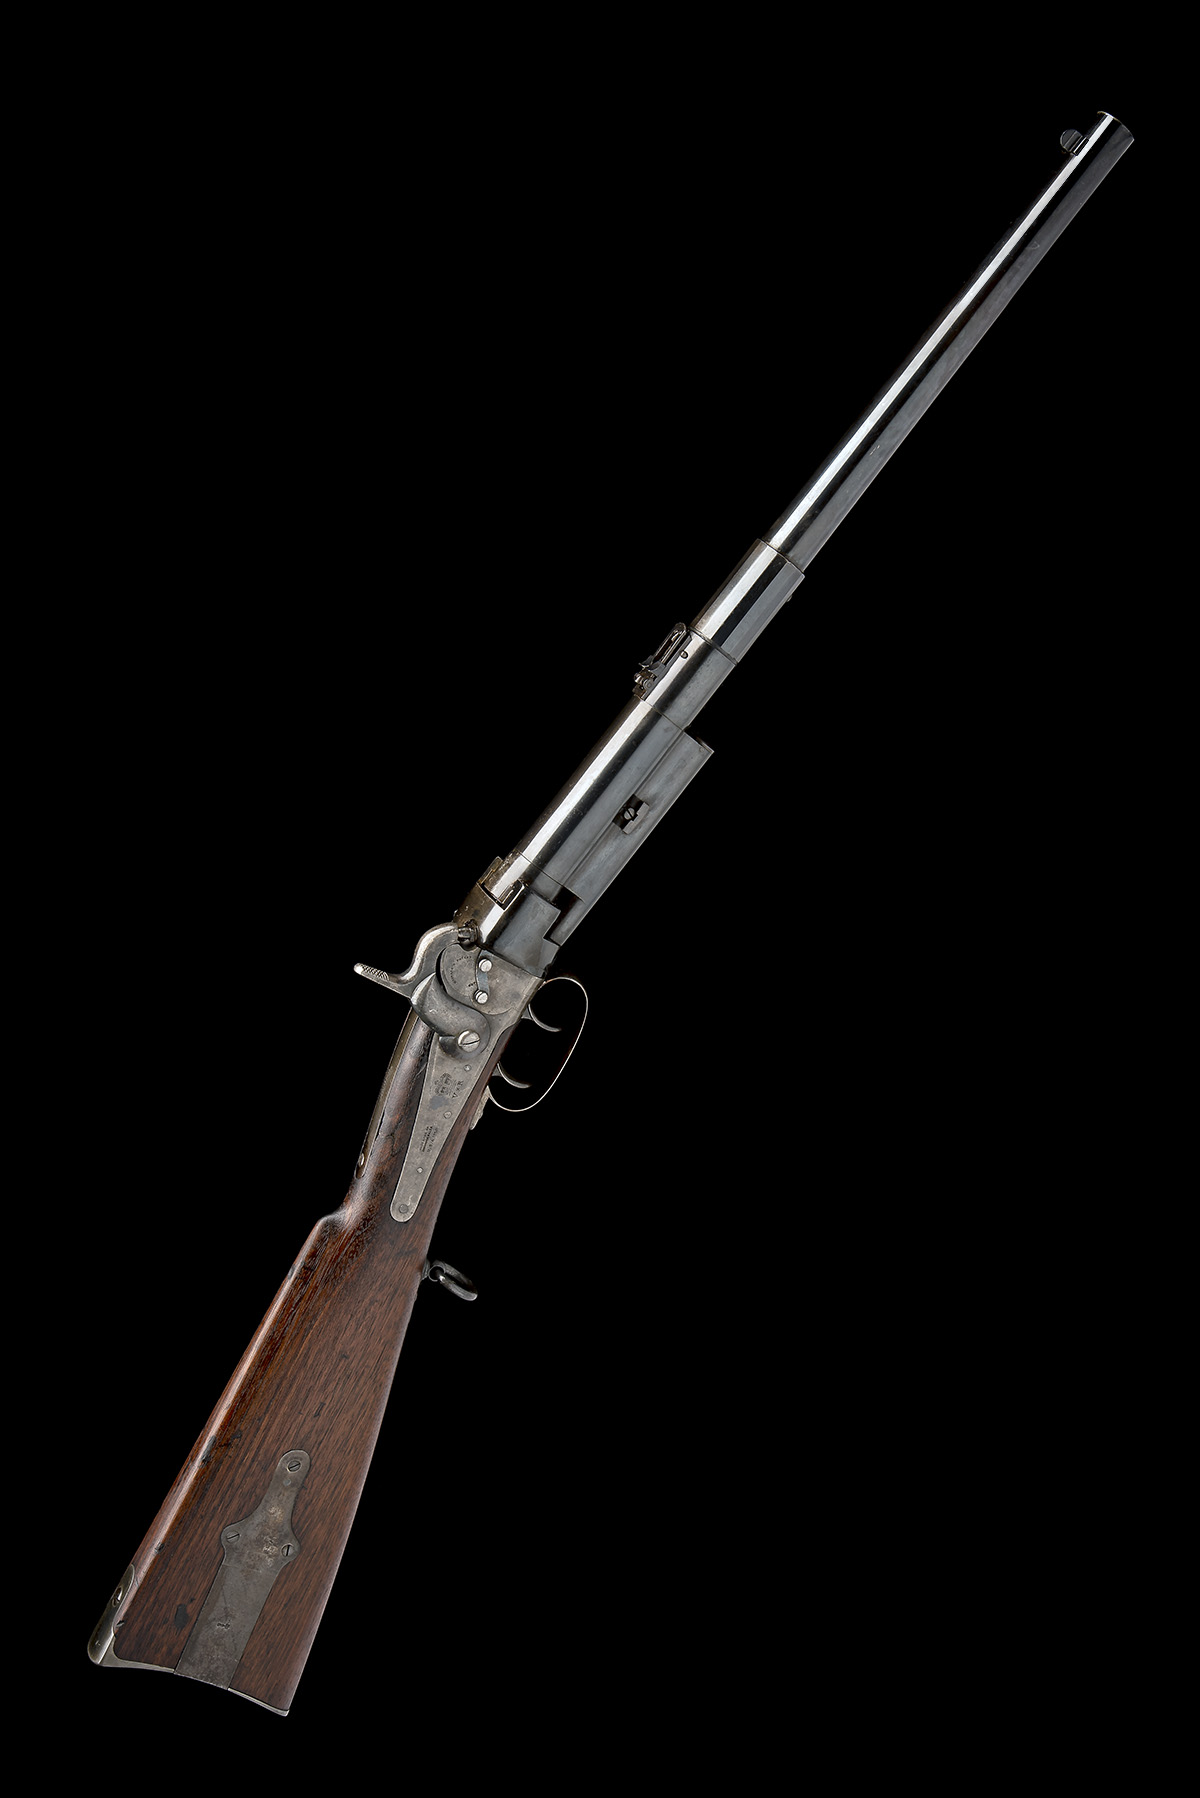 MASSACHUSETTS ARMS, USA A .54 CAPPING BREECH-LOADING CARBINE, MODEL 'GREENE'S PATENT BRITISH ISSUE',